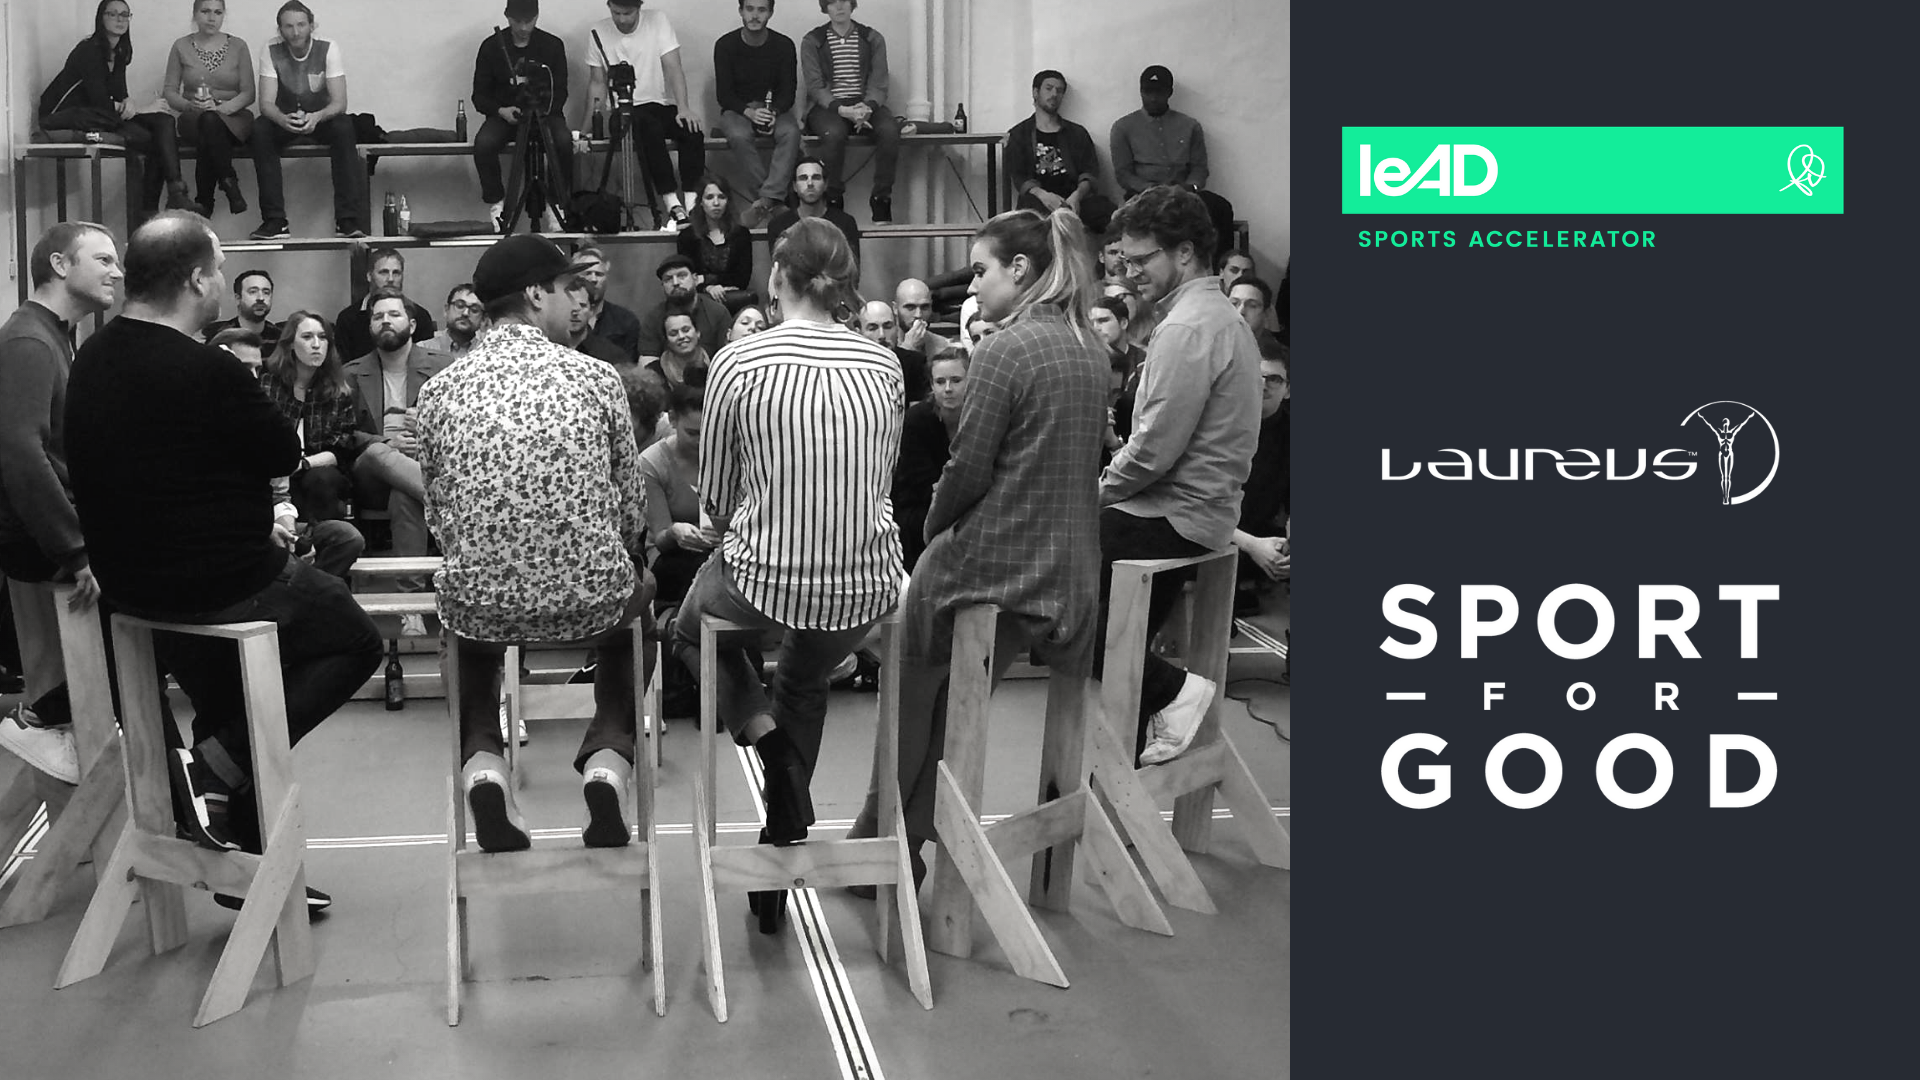 leAD & Laureus Sport for Good team up to invite you for an inspiring evening of sports and social impact